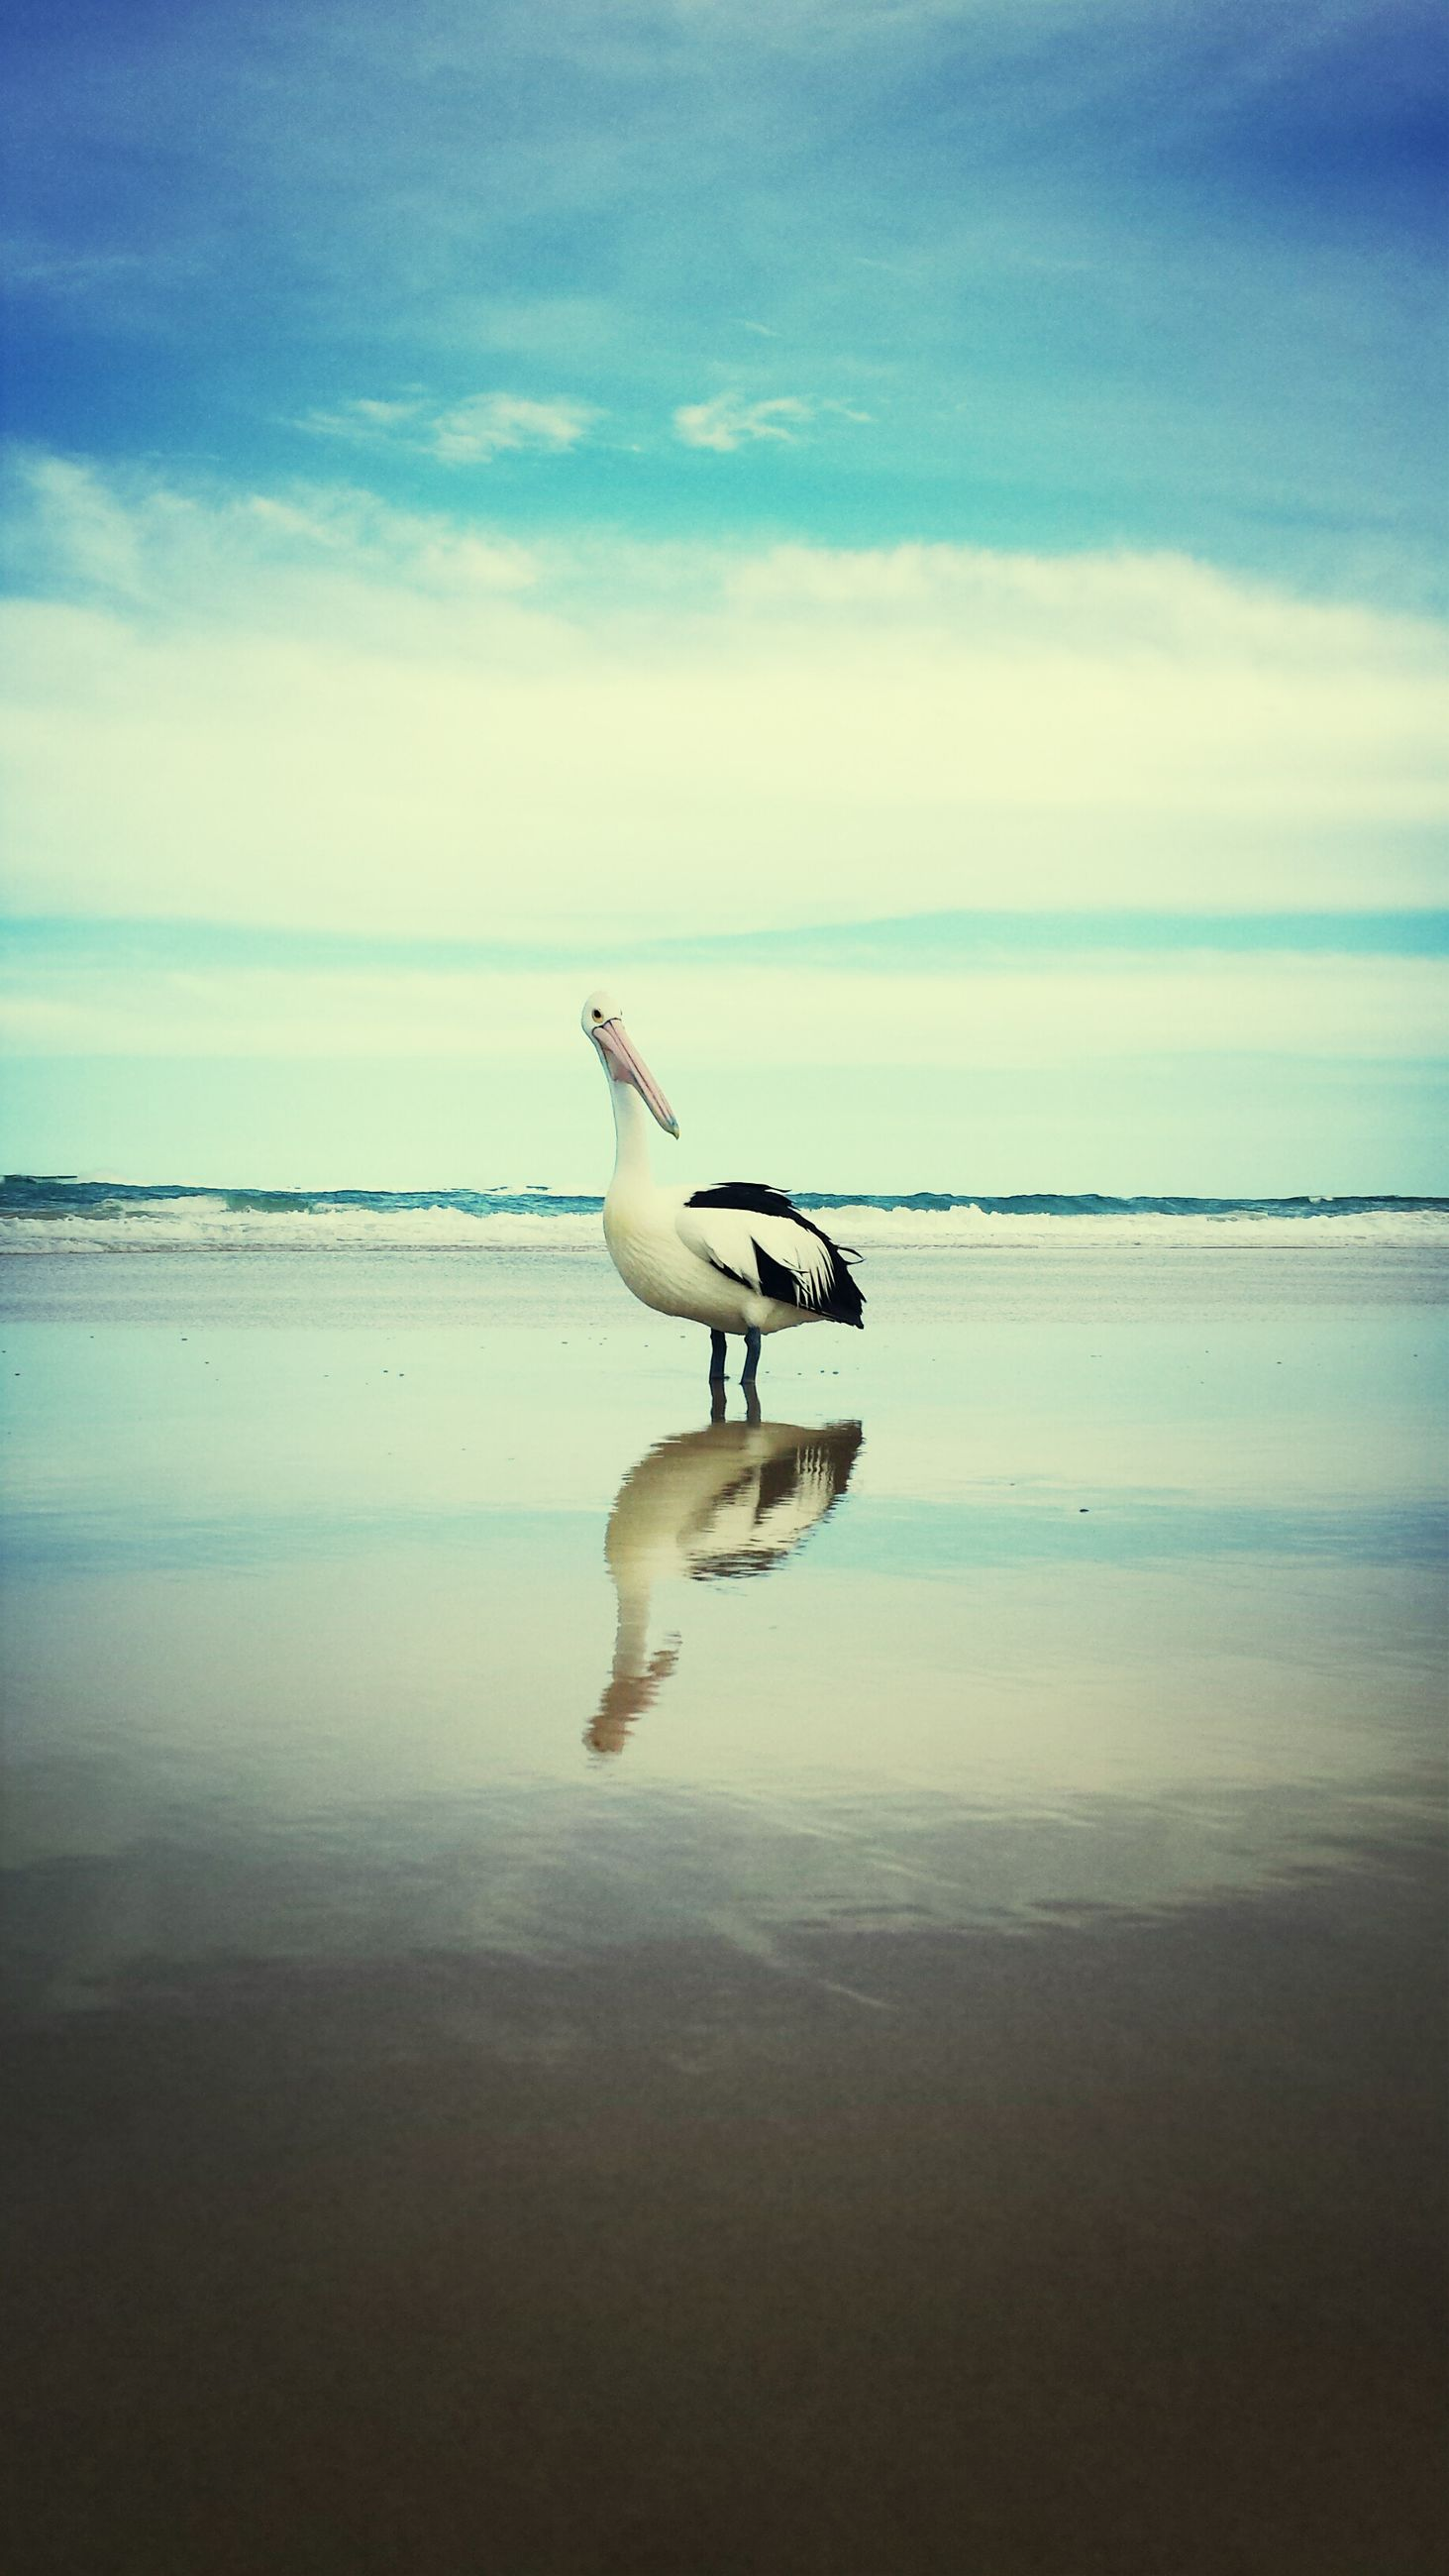 sea, animal themes, bird, water, seagull, horizon over water, beach, one animal, sky, animals in the wild, wildlife, shore, nature, beauty in nature, tranquil scene, tranquility, sand, scenics, cloud - sky, cloud